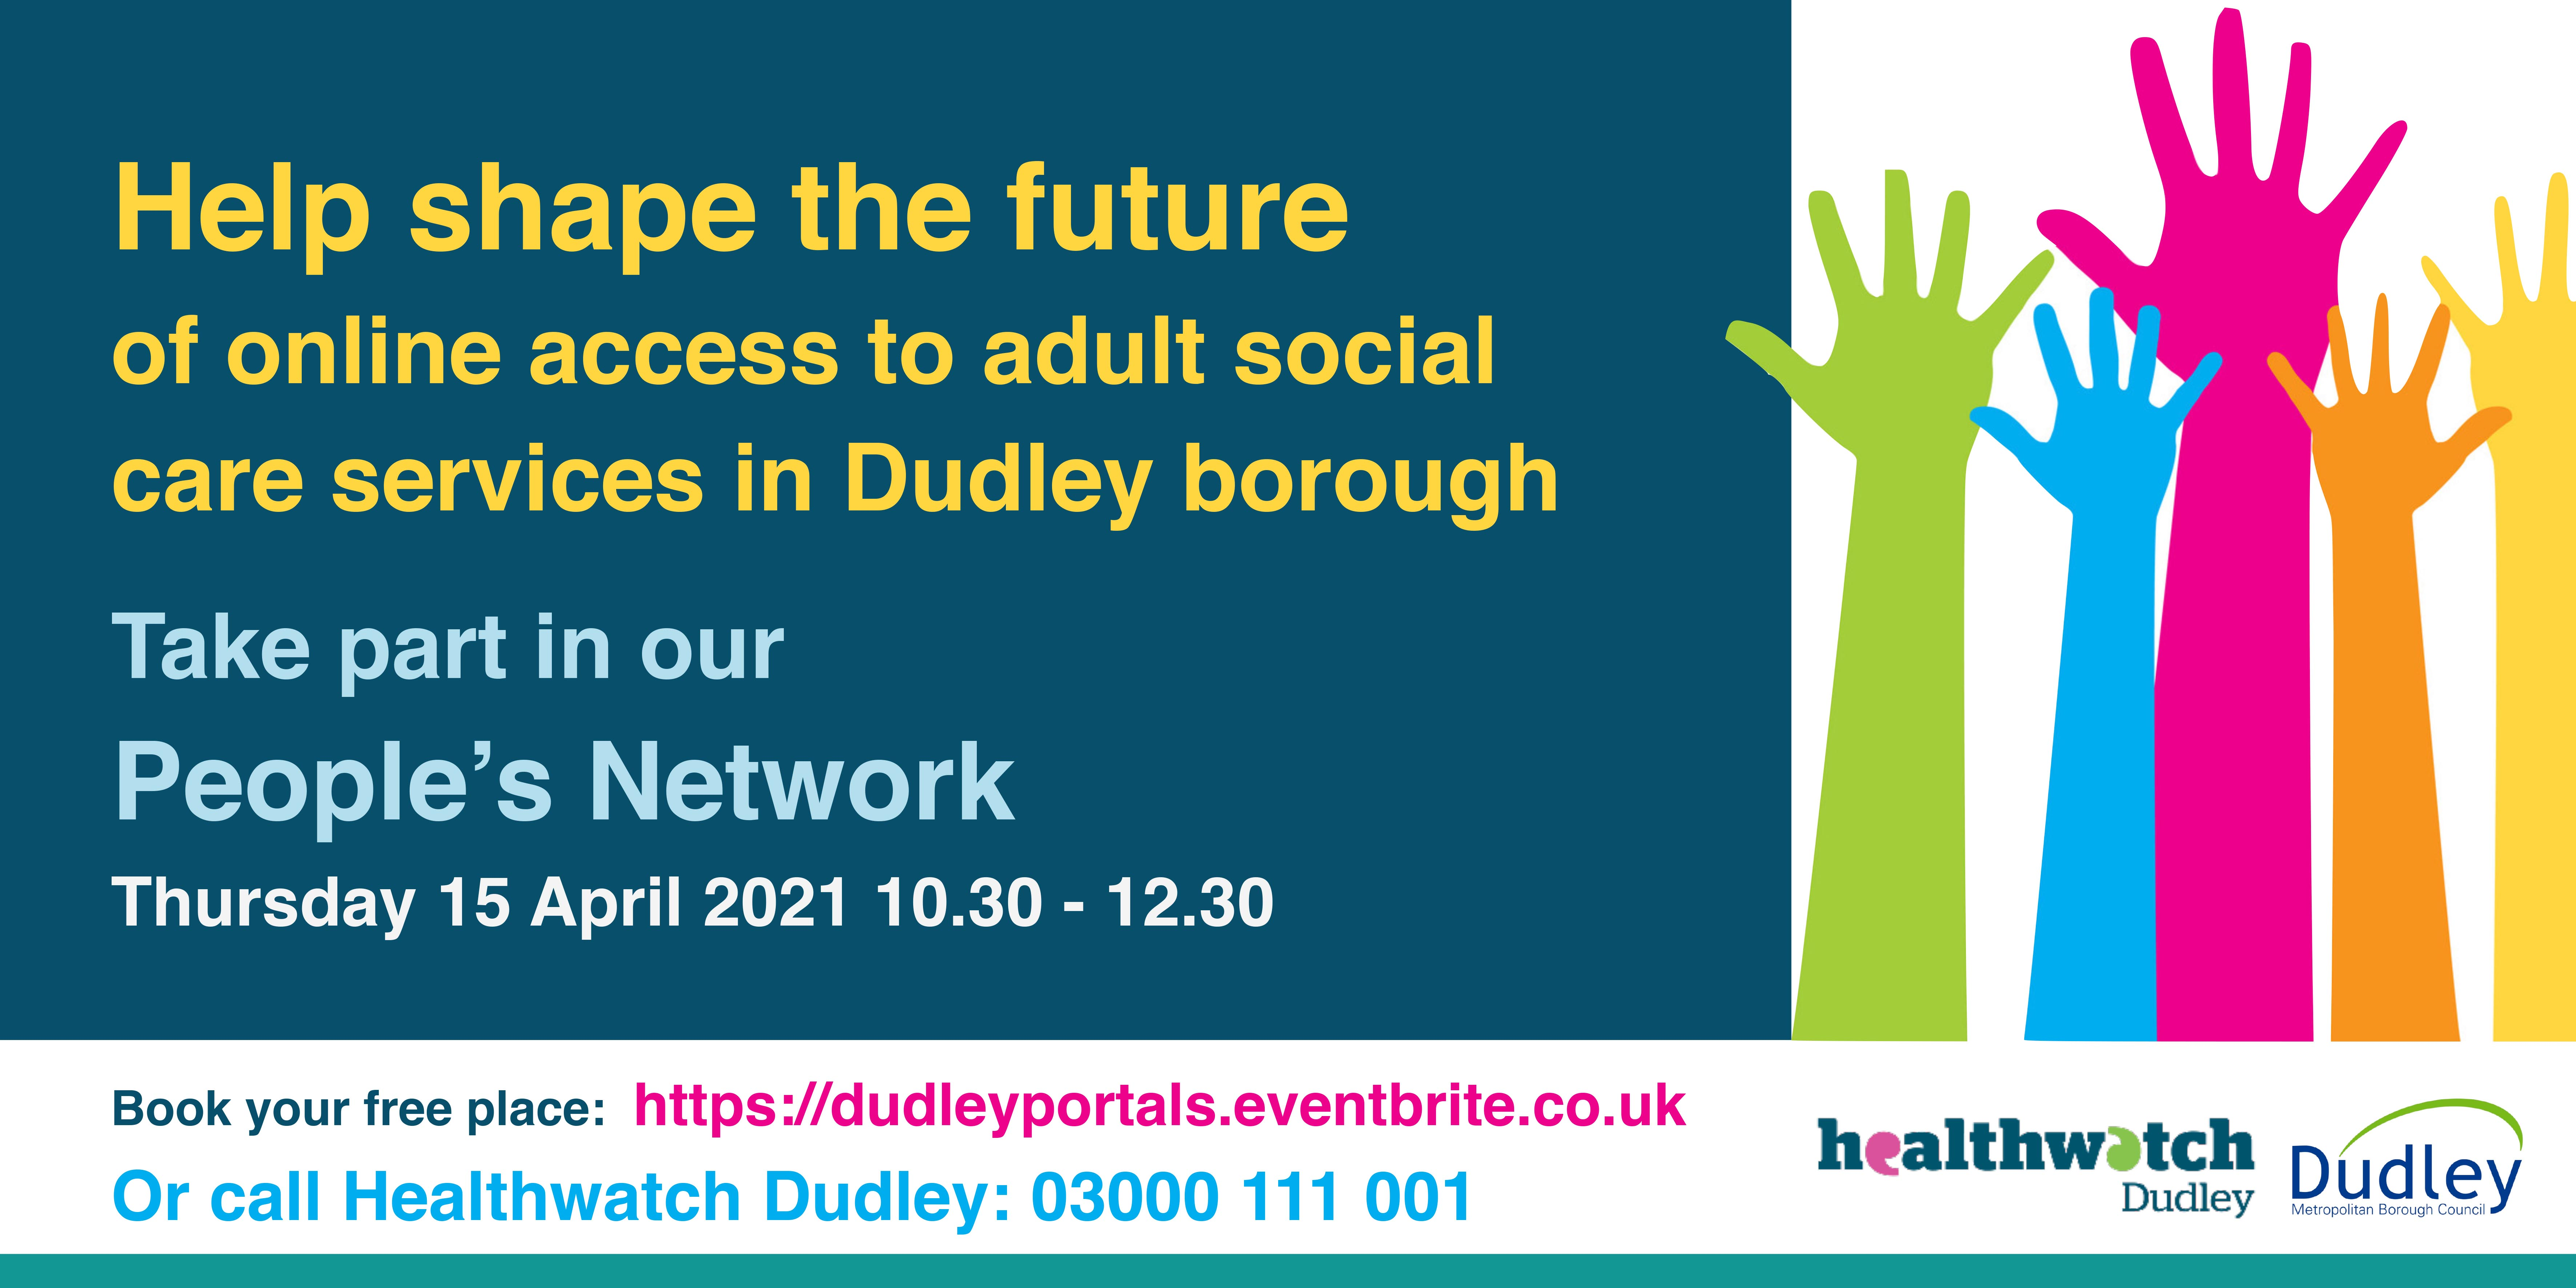 Help shape the future of online access to adult social care services in Dudley borough. Take part in our People's Network. Thursday 15 April 2021. 10.30am - 12.30pm. Book your free place: https://dudleyportals.eventbrite.co.uk or call Healthwatch Dudley: 03000 111 001. Text next to image of colourful hands.